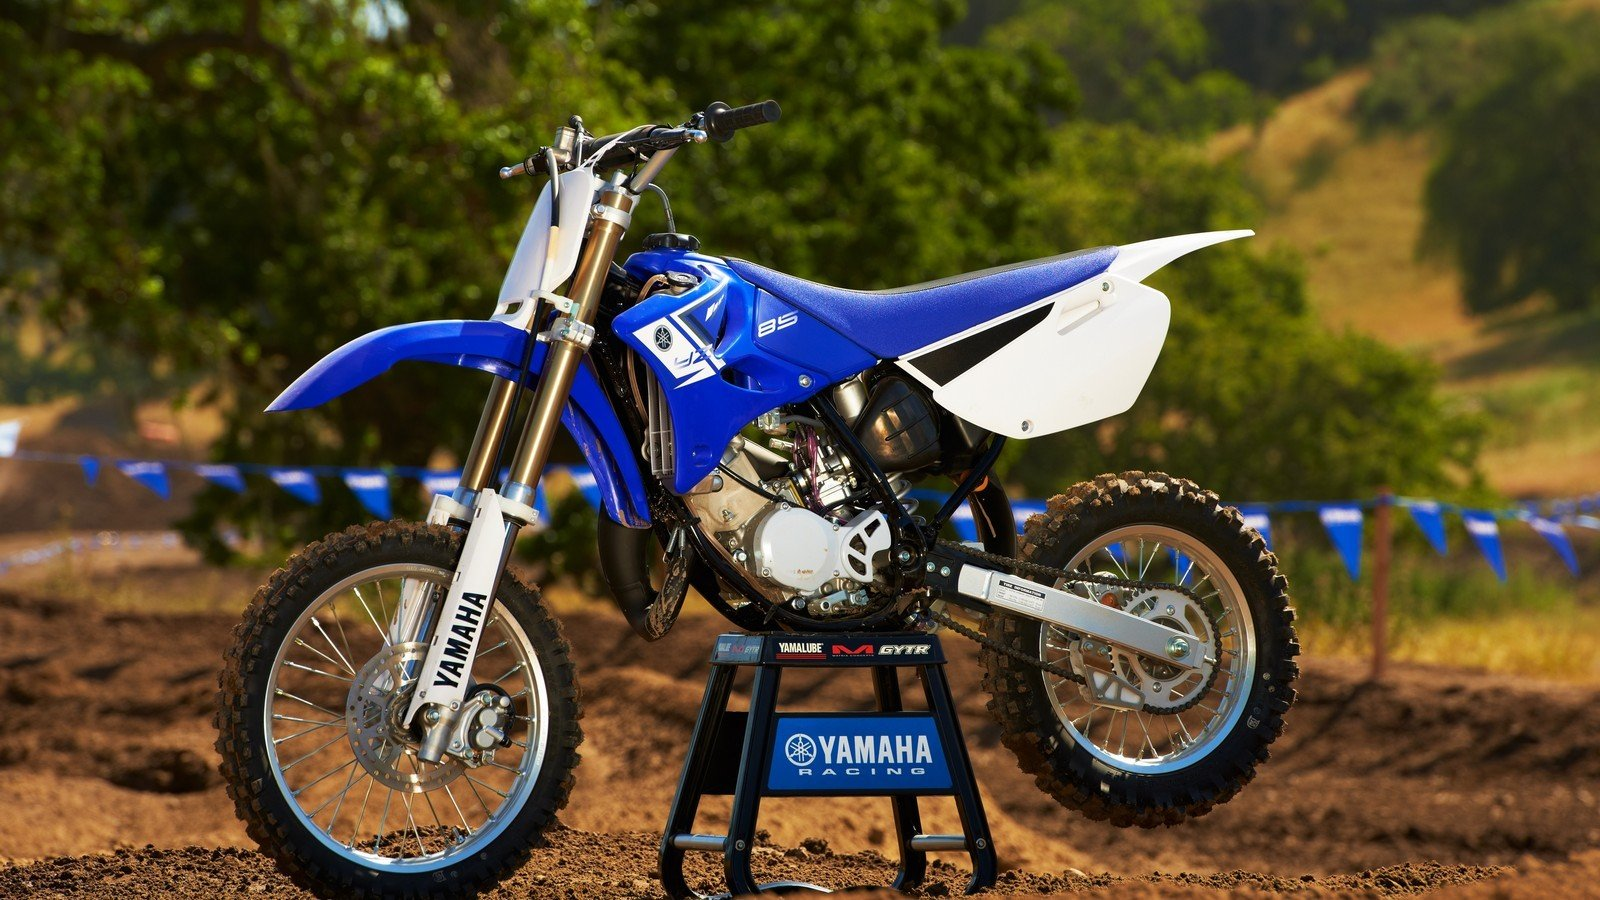 2013 yamaha yz85 picture 464555 motorcycle review for Yamaha yz85 top speed